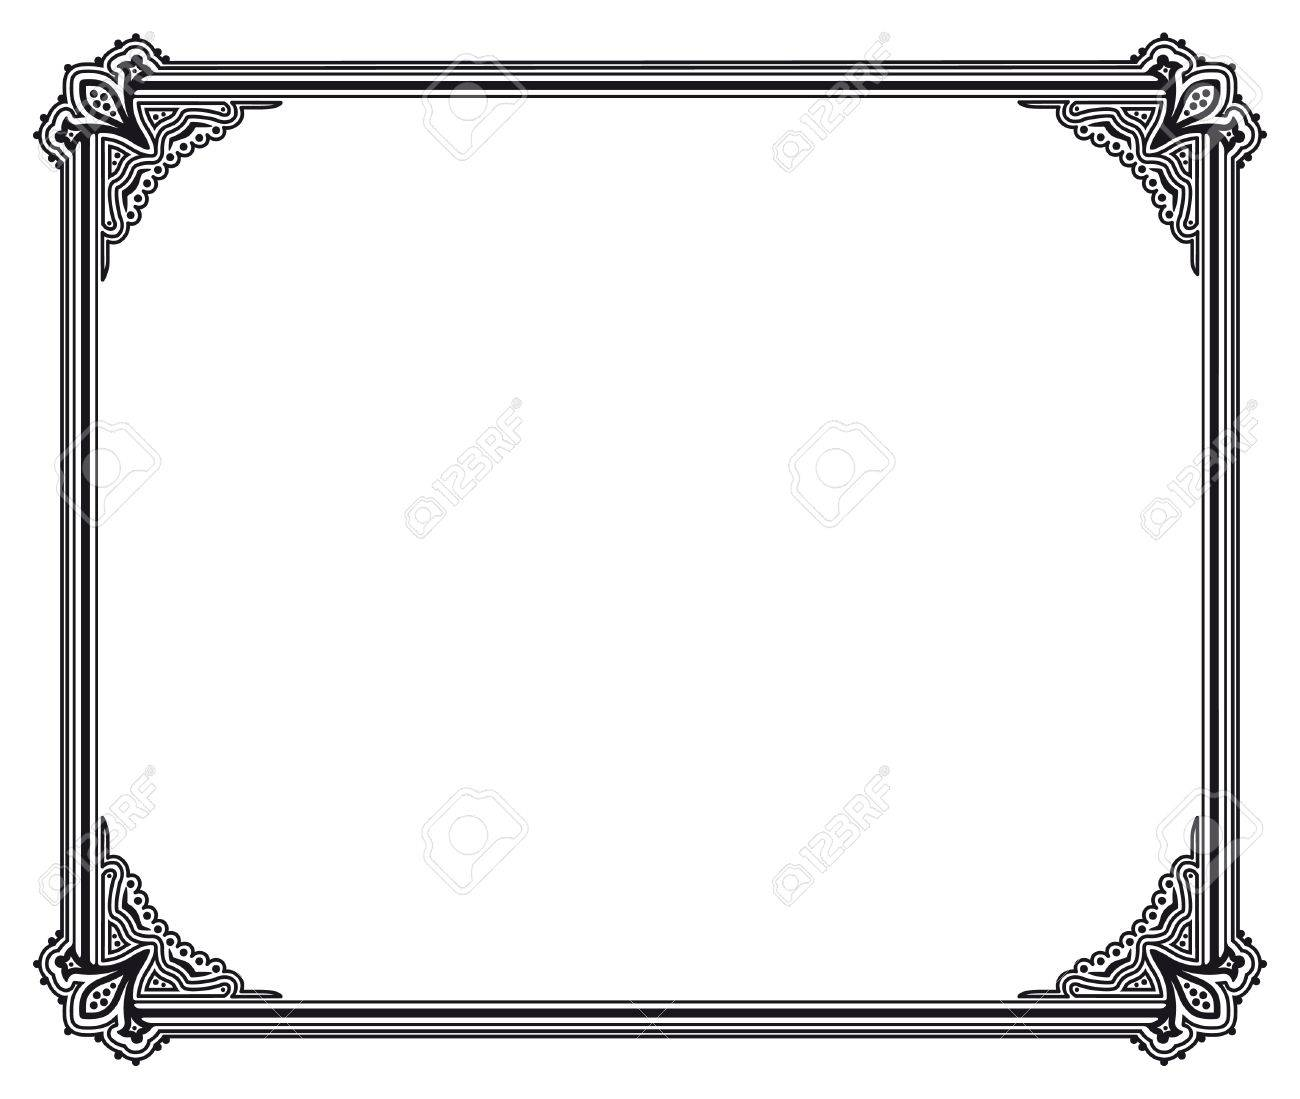 black and white vector frame royalty free cliparts vectors and rh 123rf com free vector frames for illustrator free vector frame download